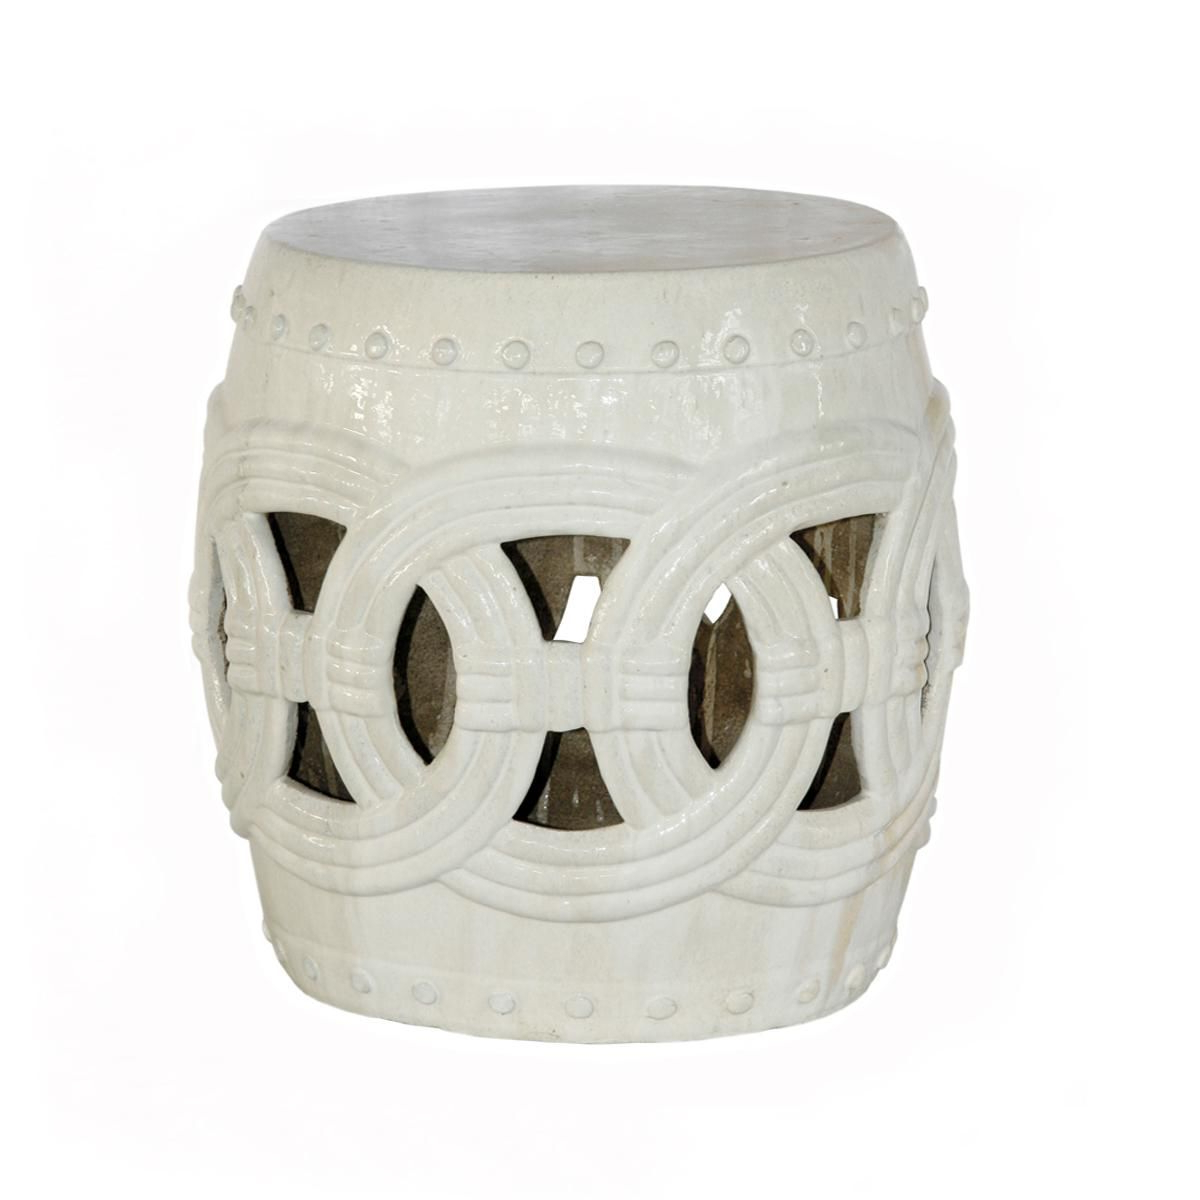 Most Recent Holbrook Ceramic Garden Stools With Regard To Holbrook Ceramic Garden Stool – Vozeli (View 5 of 30)